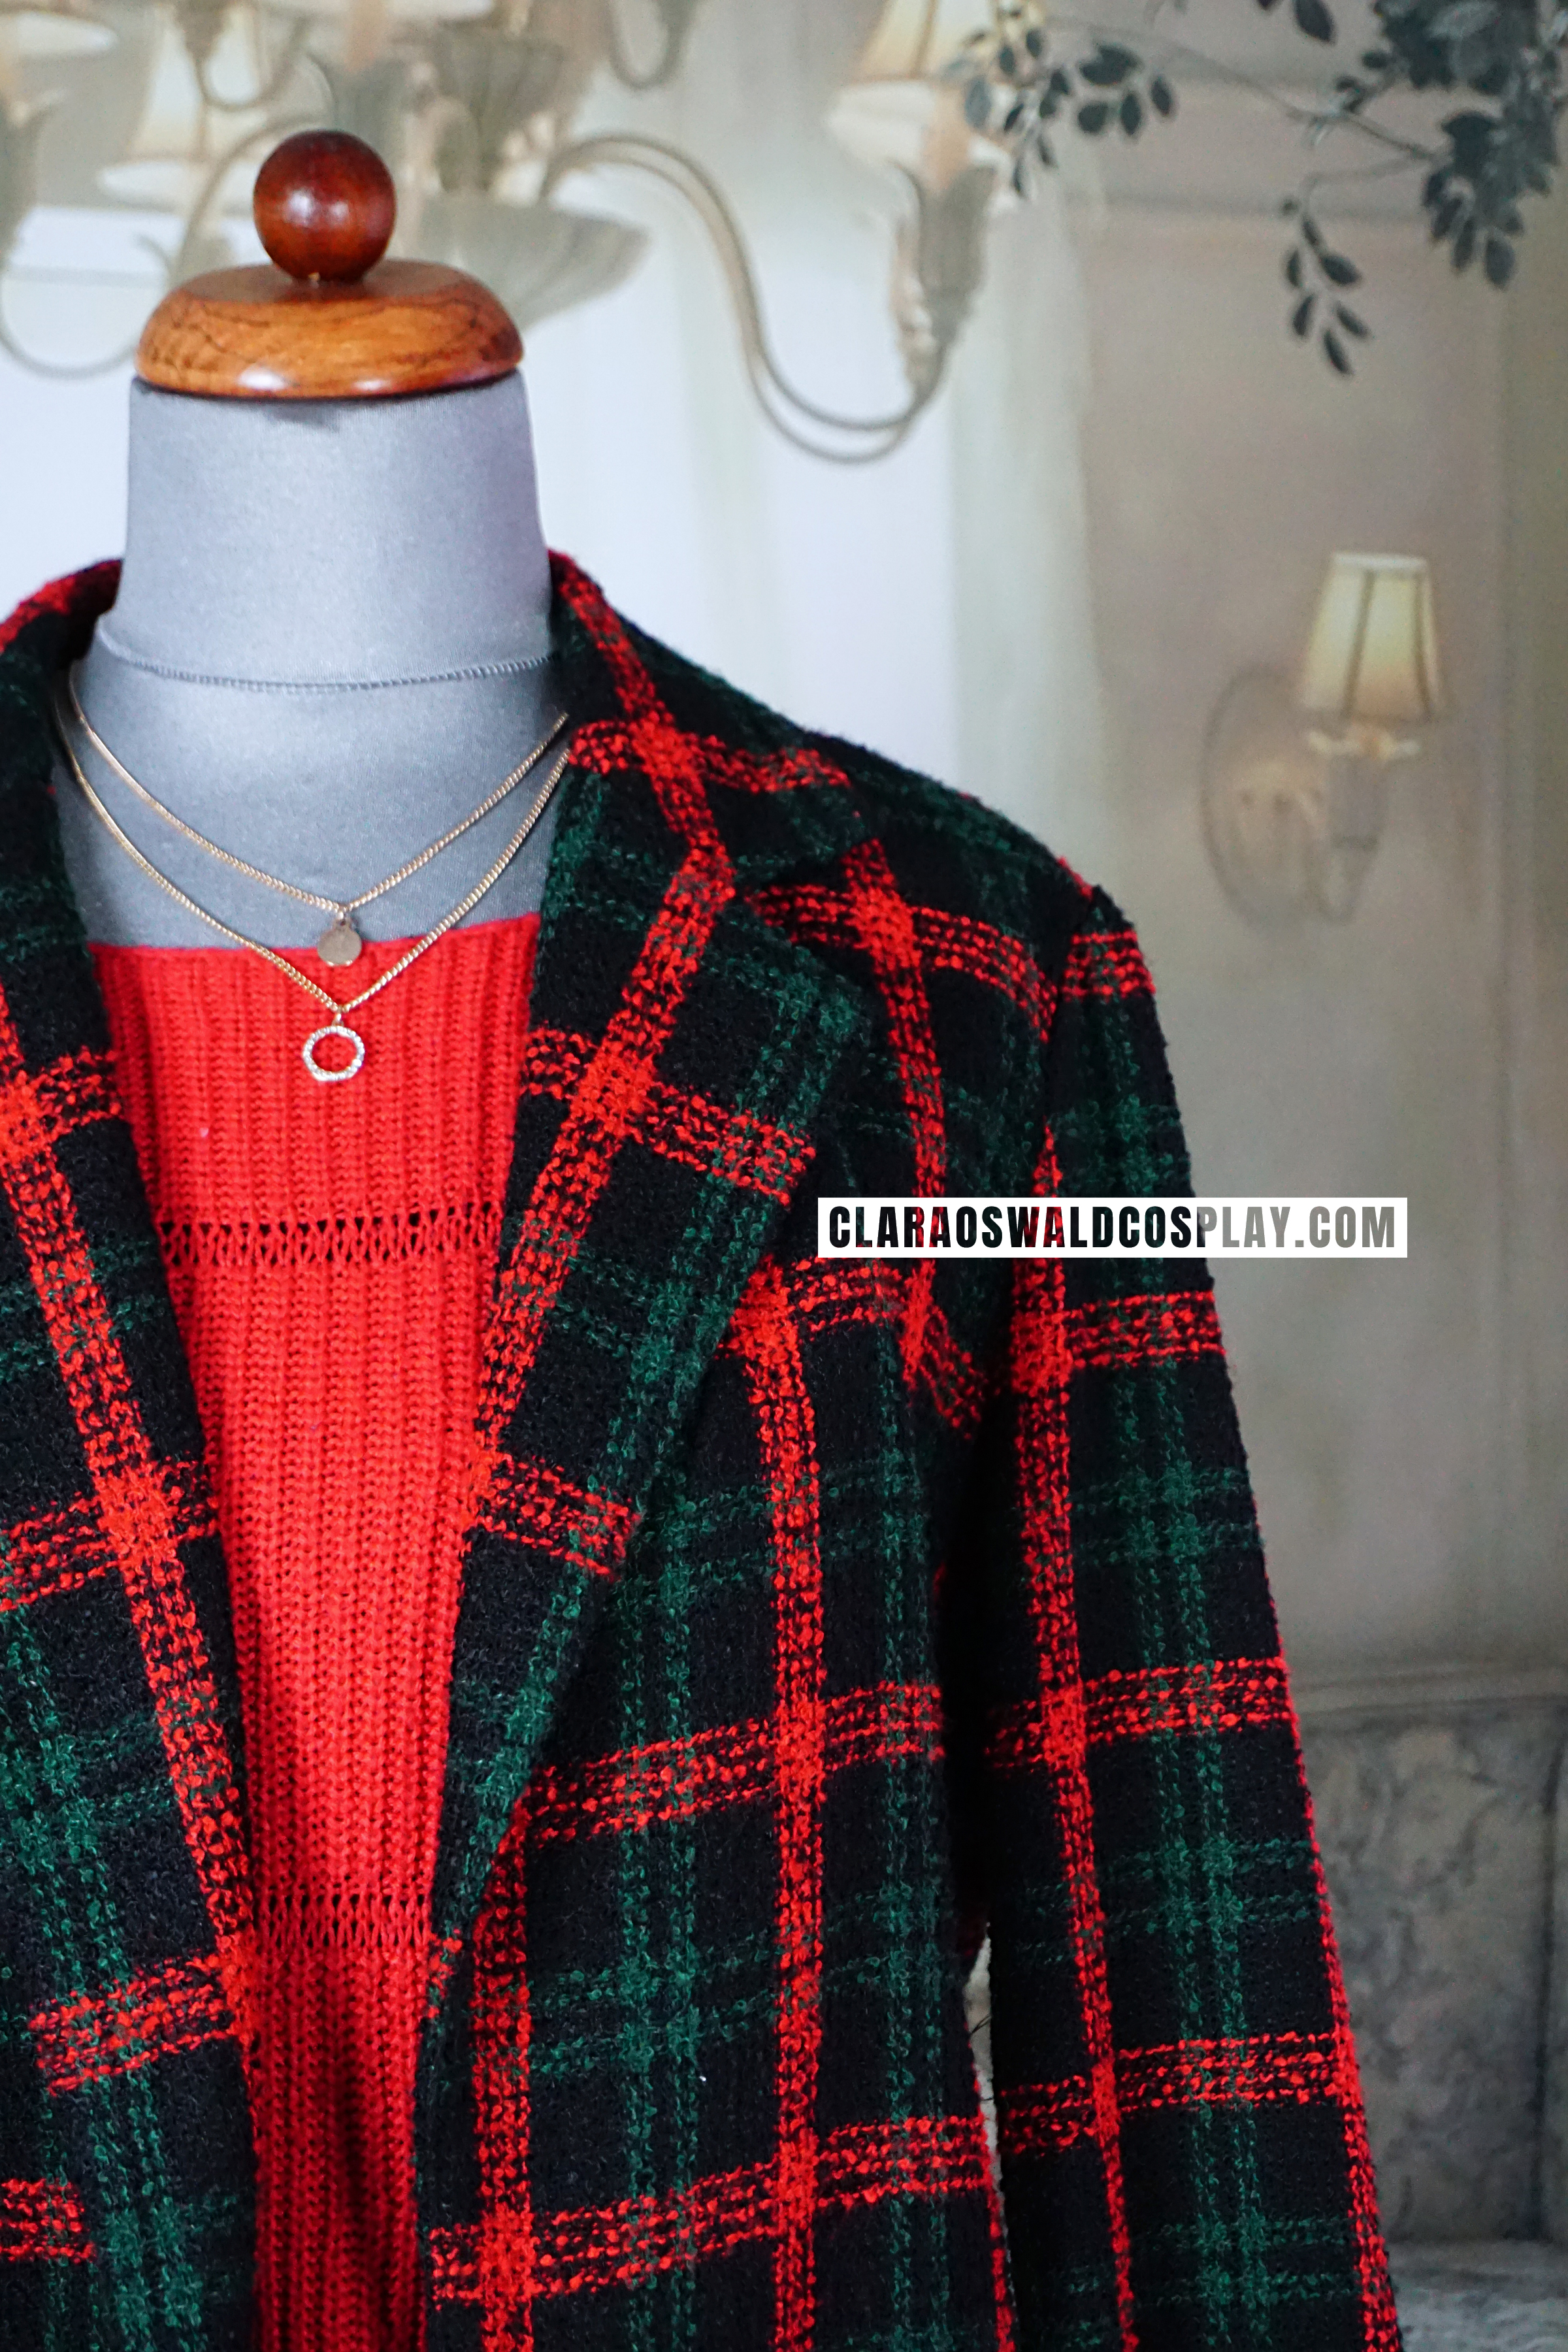 A detailed look at the ASOS Reclaimed Vintage Check Coat